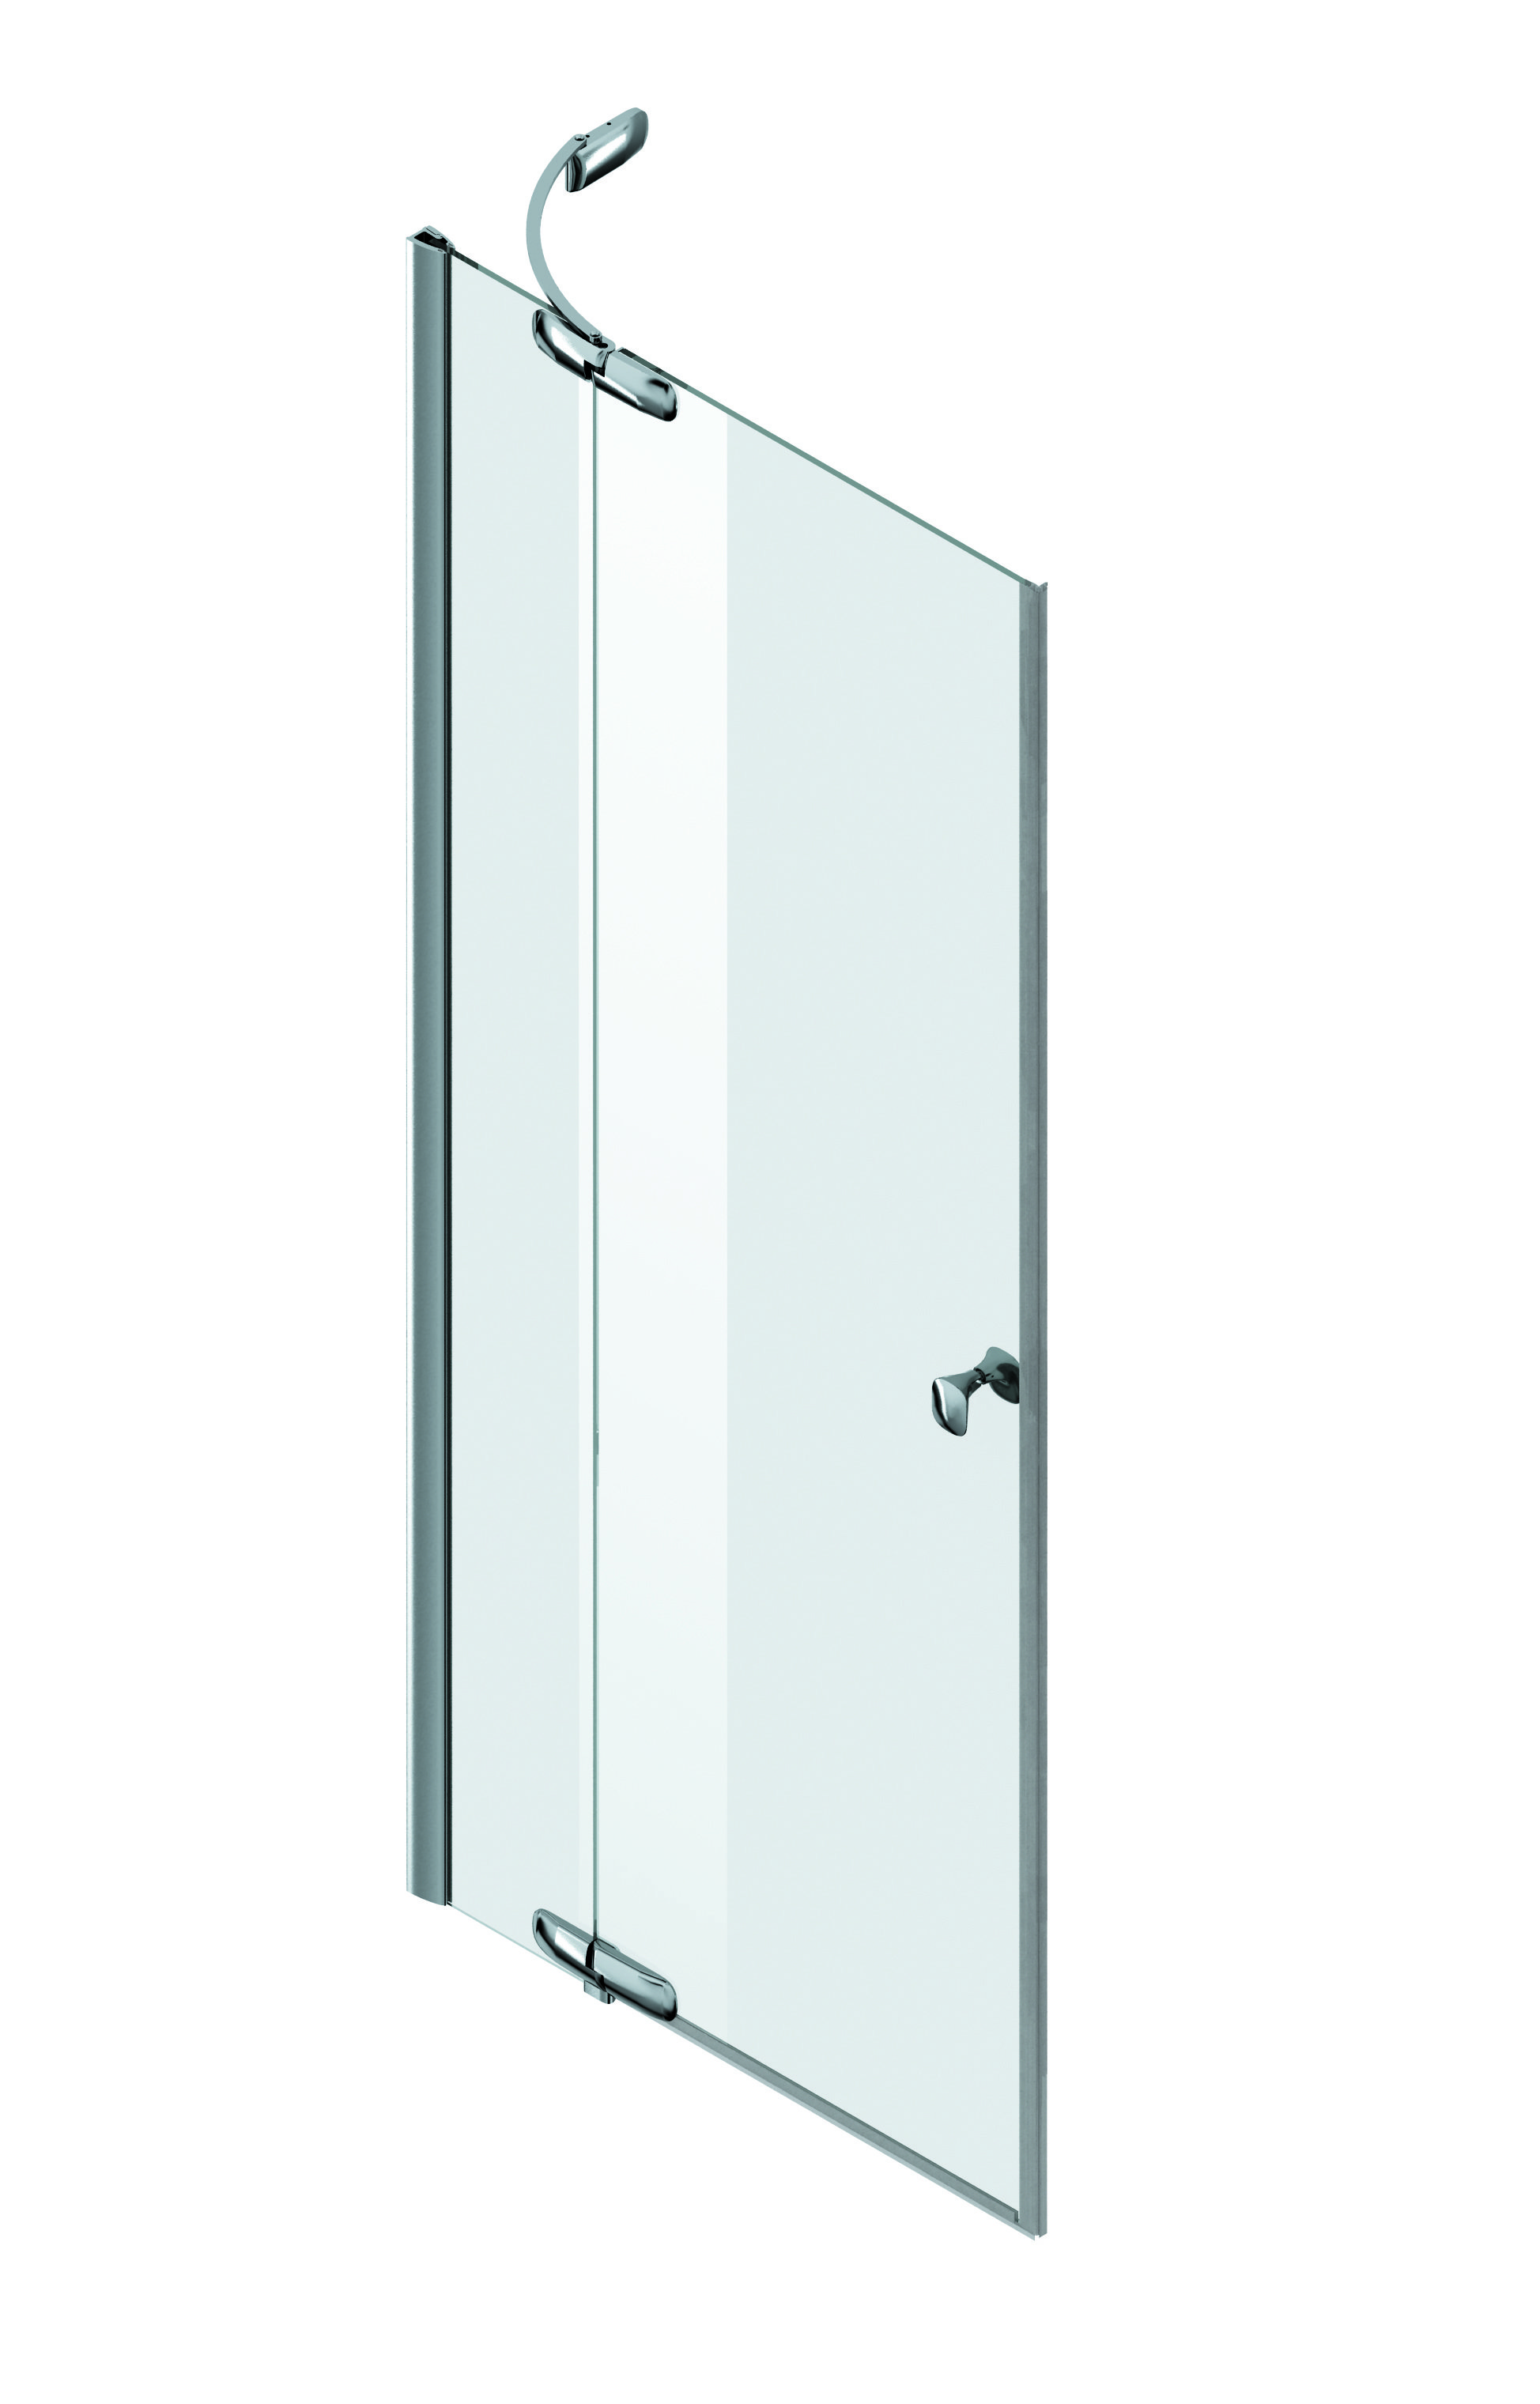 W30G-E3D8-200-CT L/R Pivot door with fixed segment